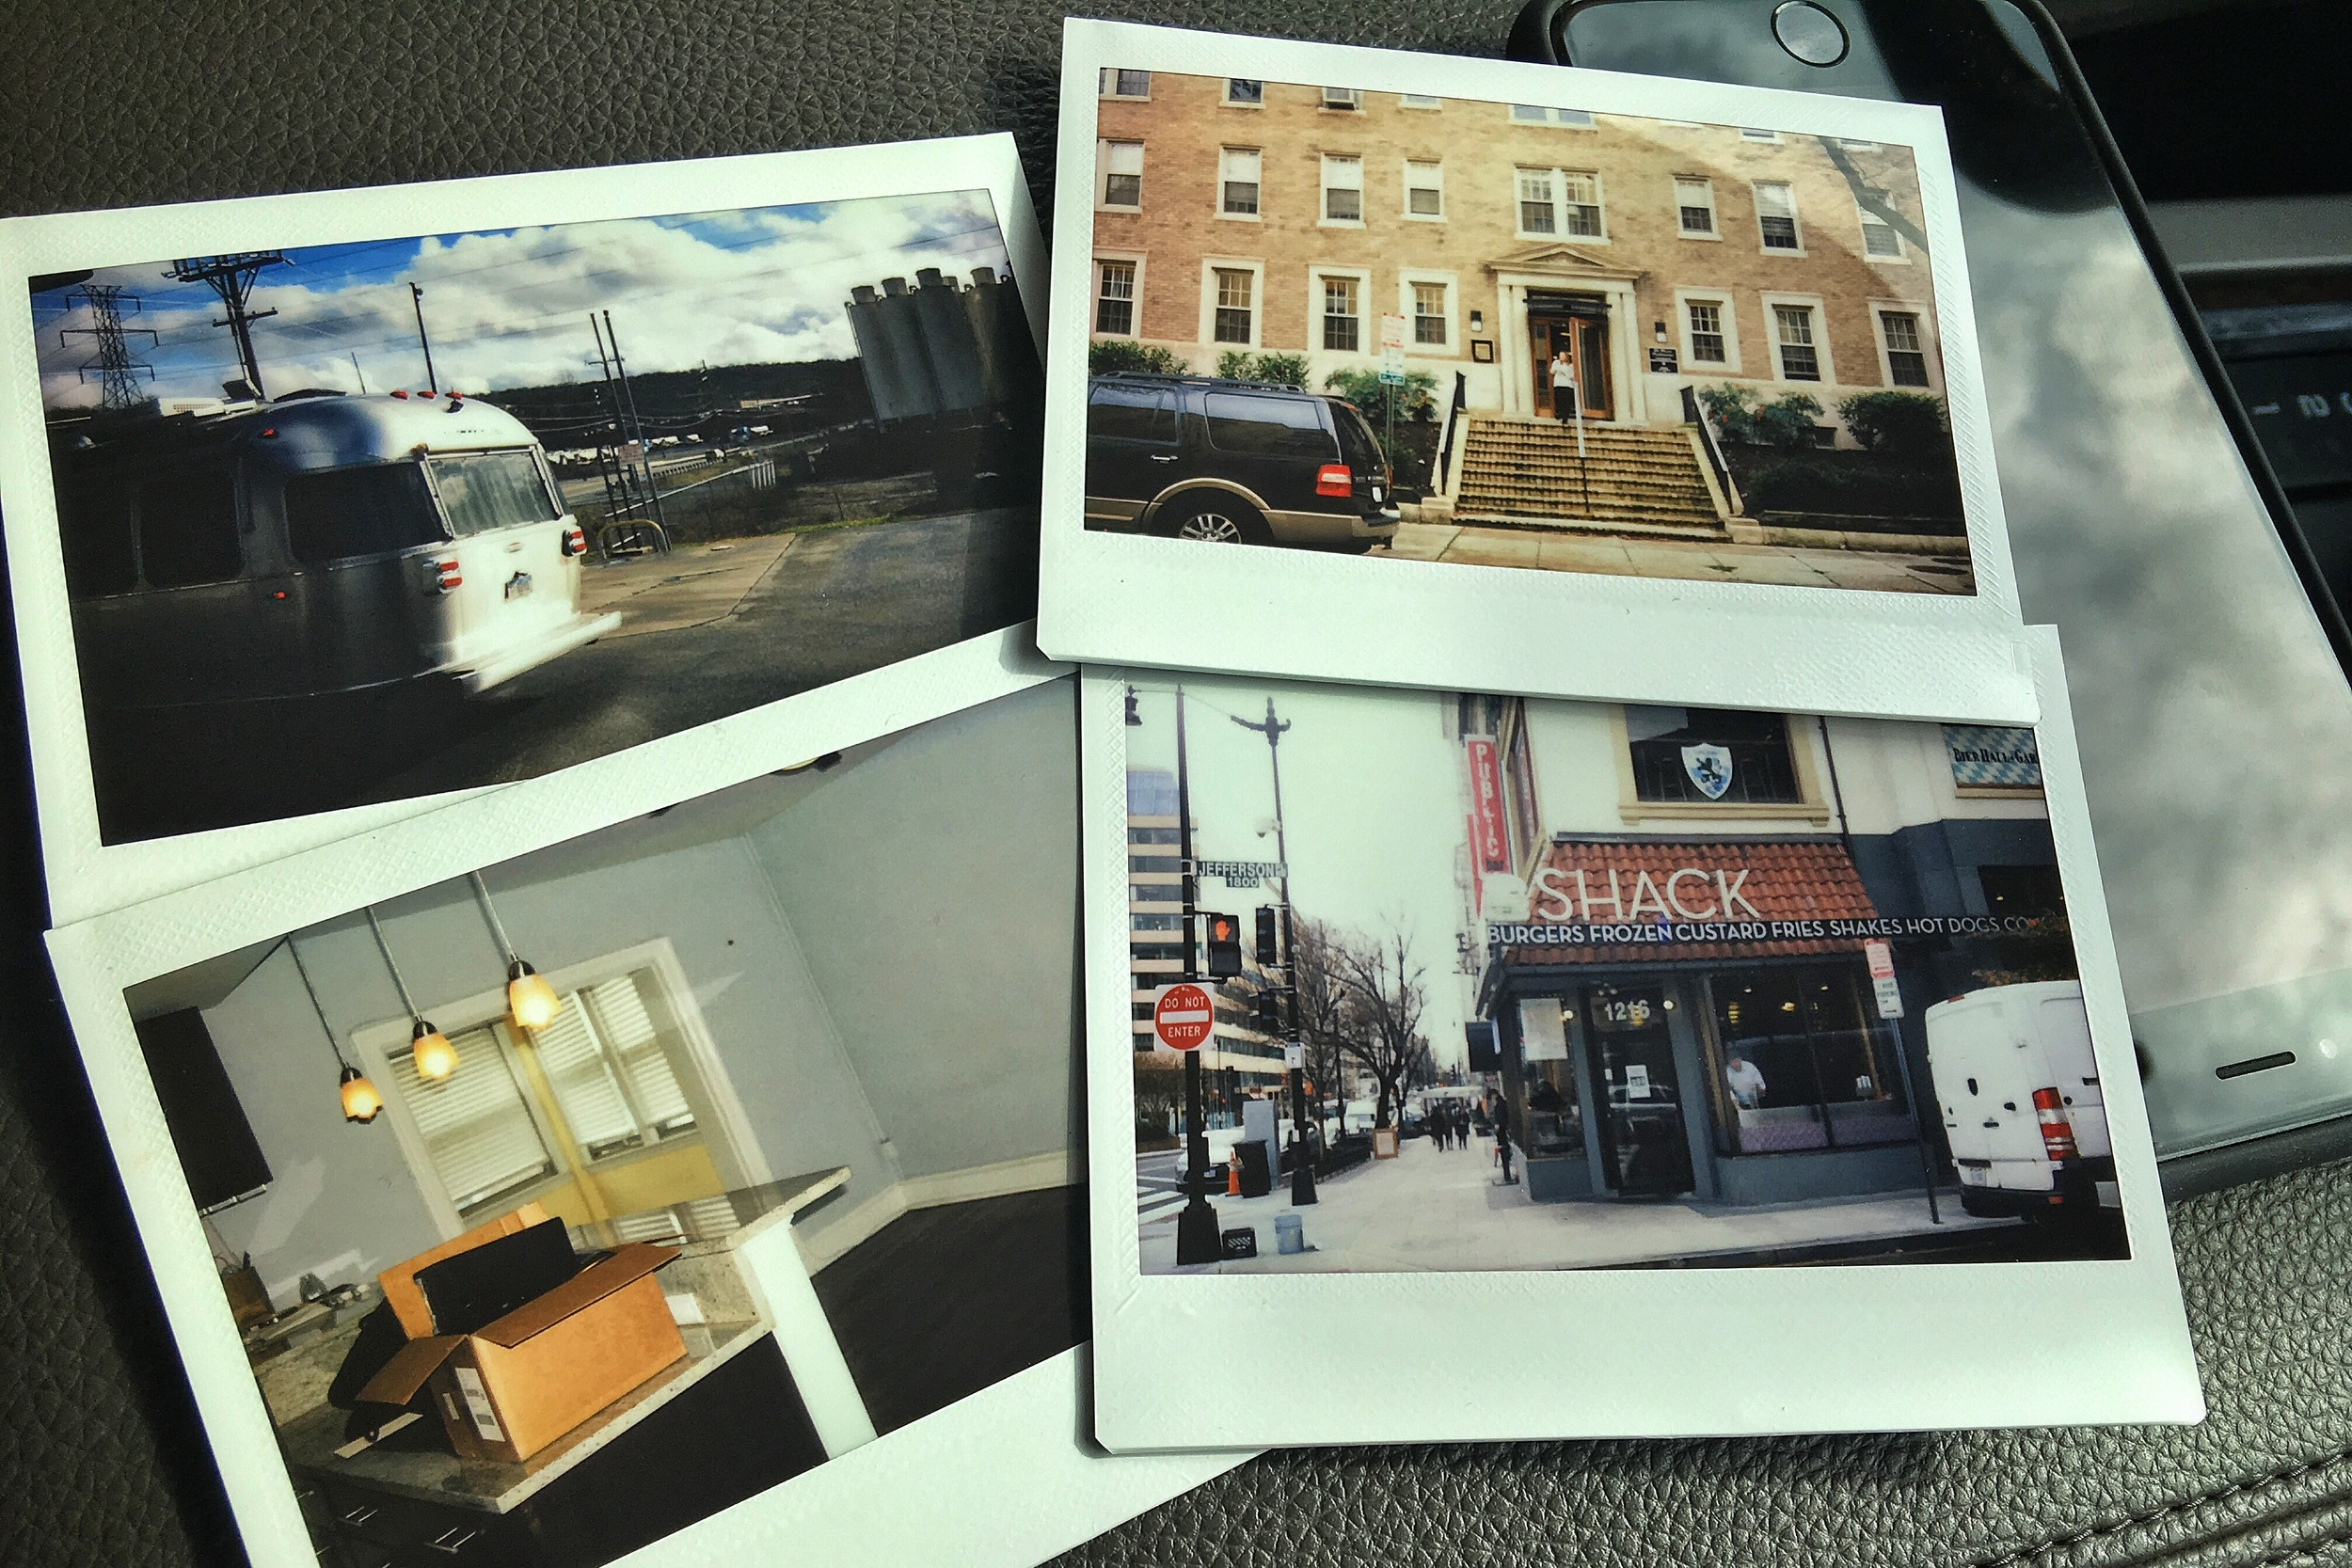 Fuji Instax snapshots of our life in transition -- new rig, old friend, empty condo, and home to our last meal in DC (Shake Shack!)